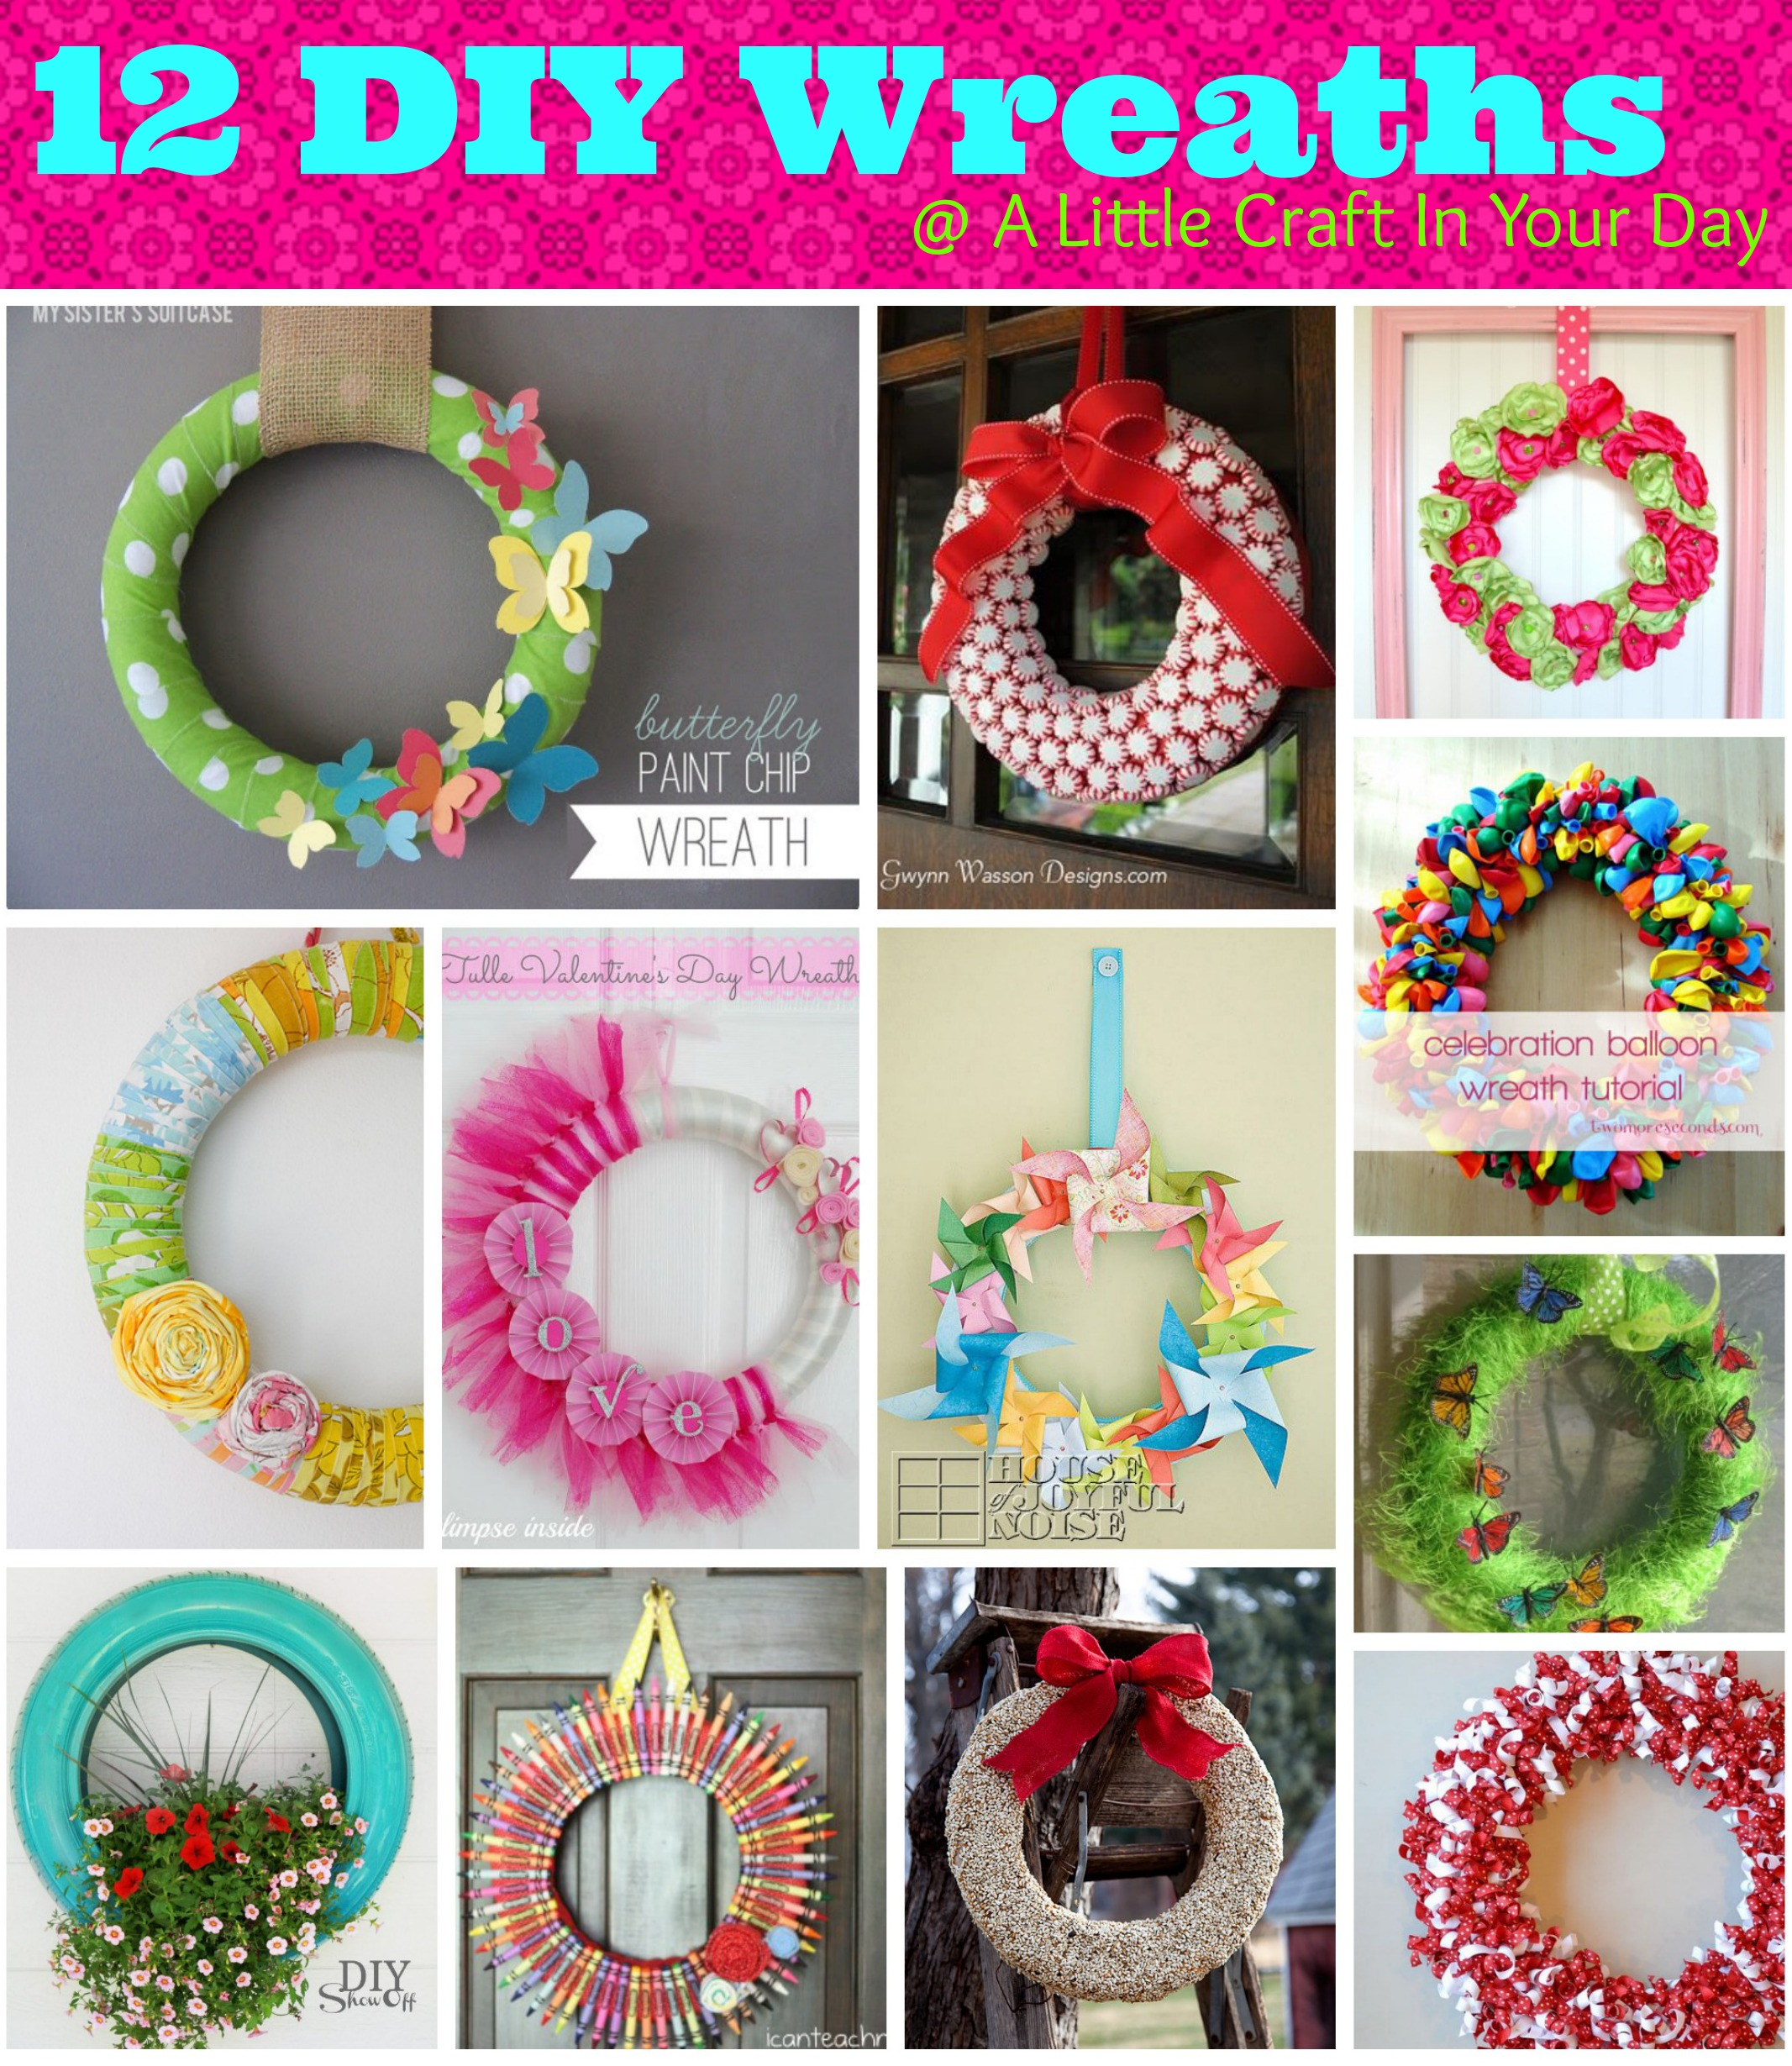 Creative Wreath Ideas: A Little Craft In Your Day